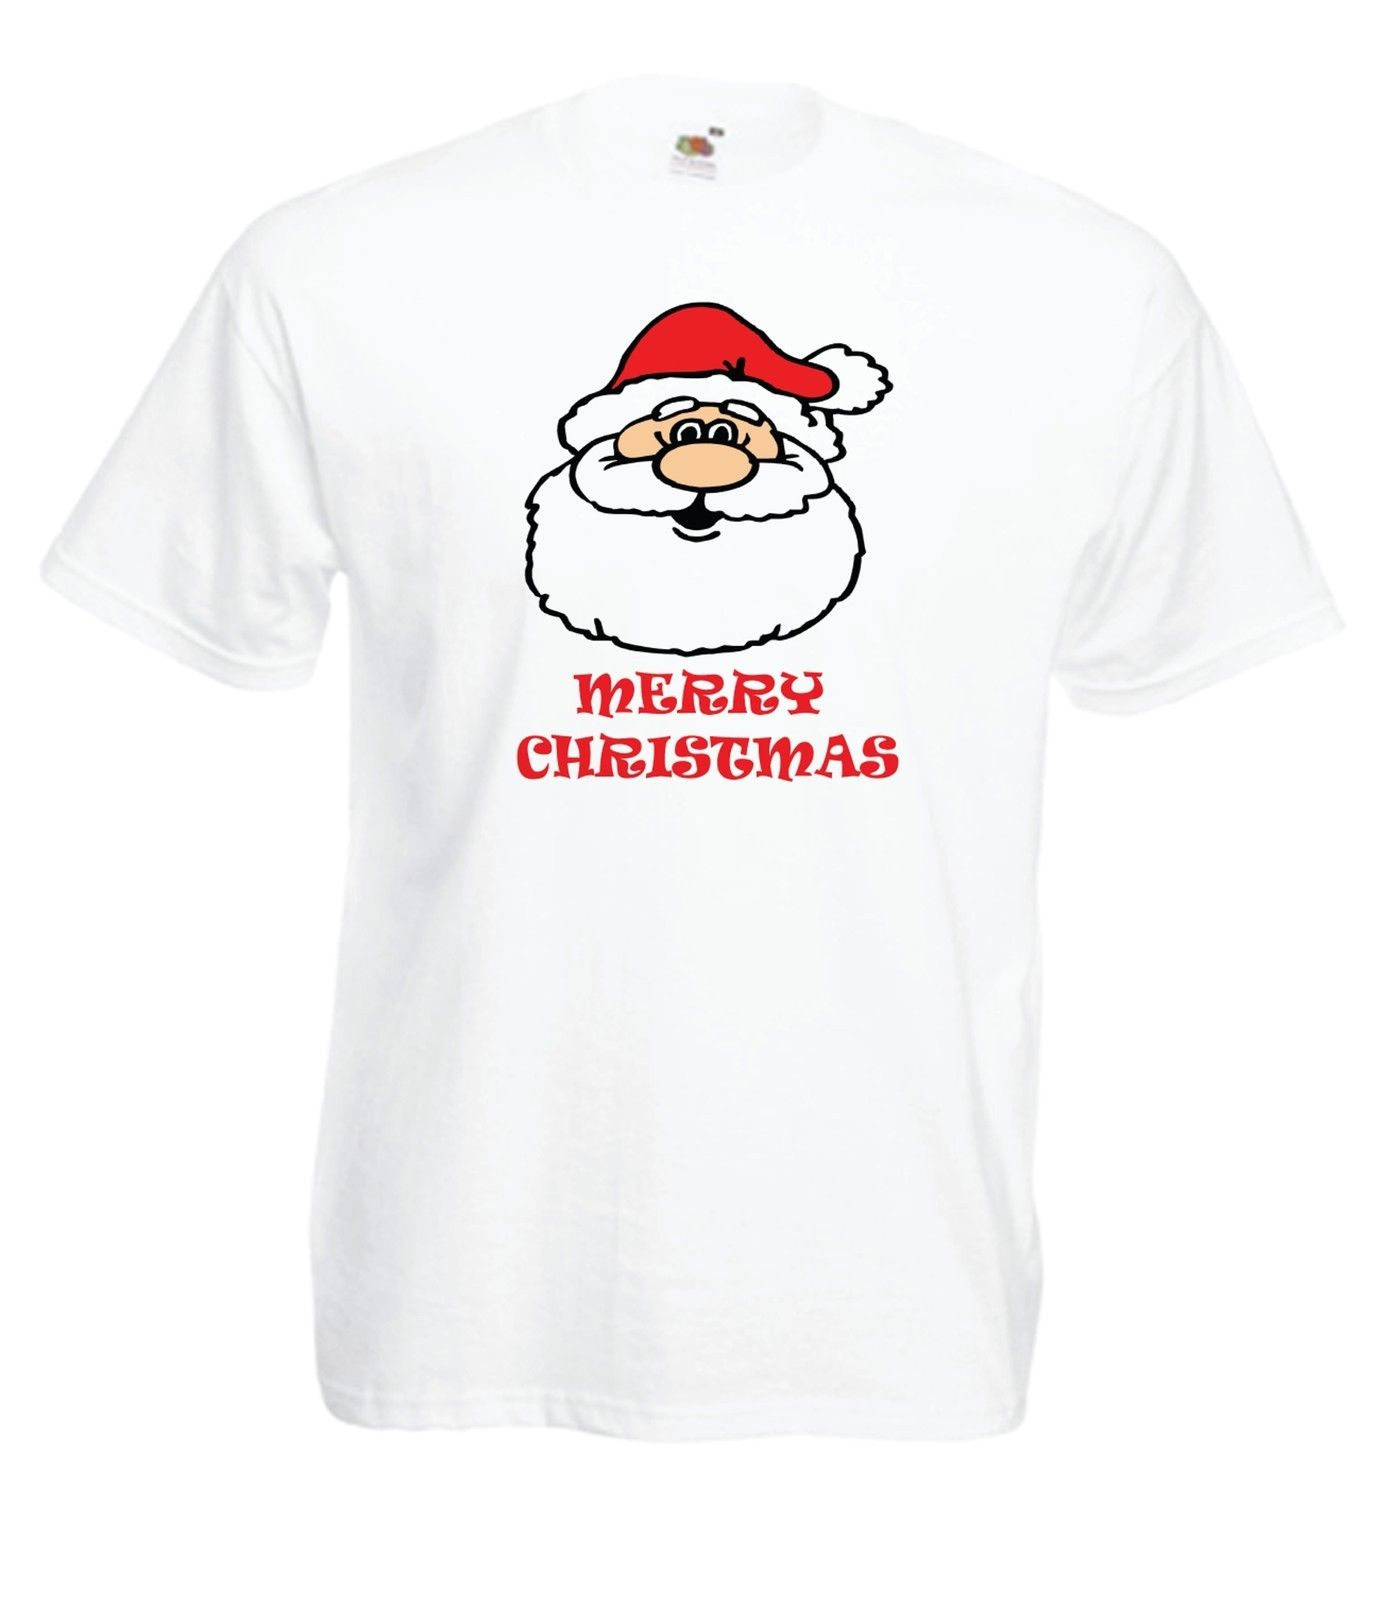 CHRISTMAS SANTA Funny Party Xmas PRESENT Gift Ideas Boys Girls Top T SHIRT Casual T-Shirt Male Short Sleeve Pattern